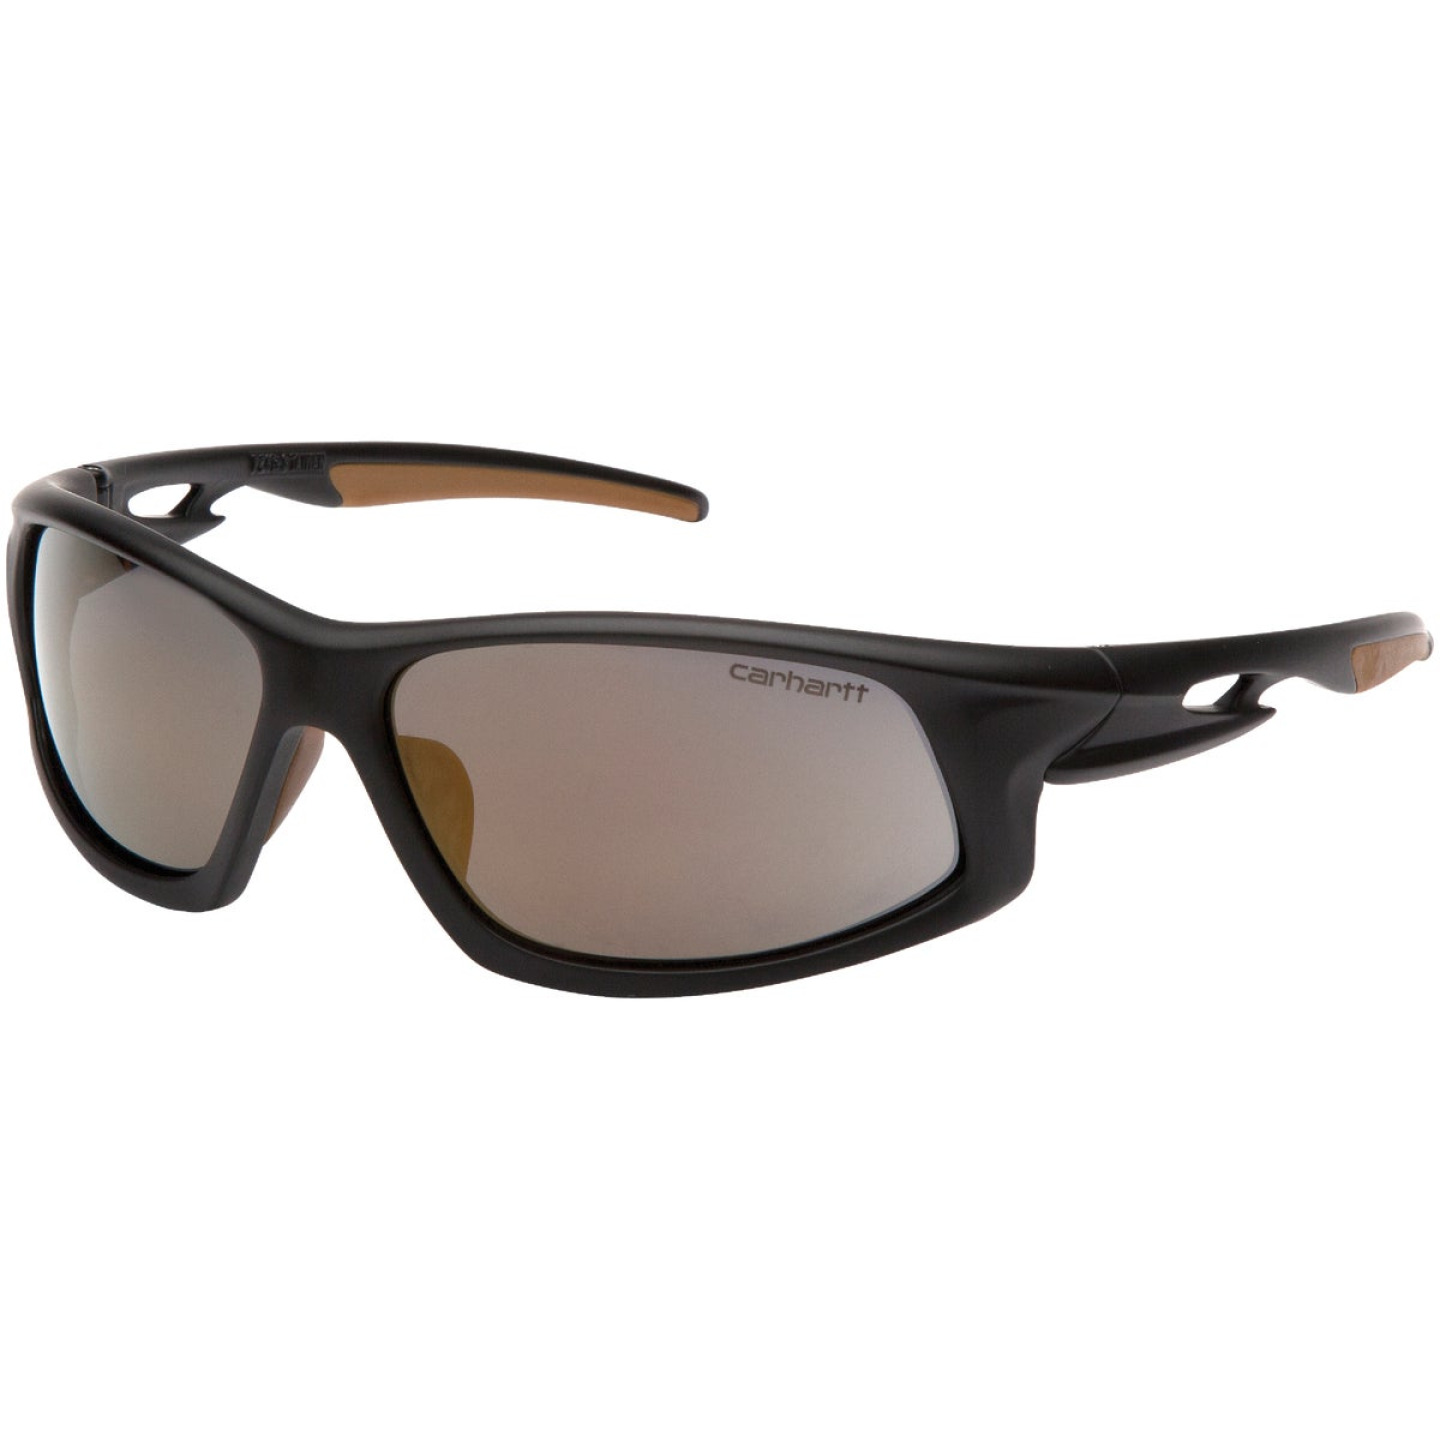 Carhartt Ironside Black & Tan Frame Safety Glasses with Antique Mirror Anti-Fog Lenses Image 1